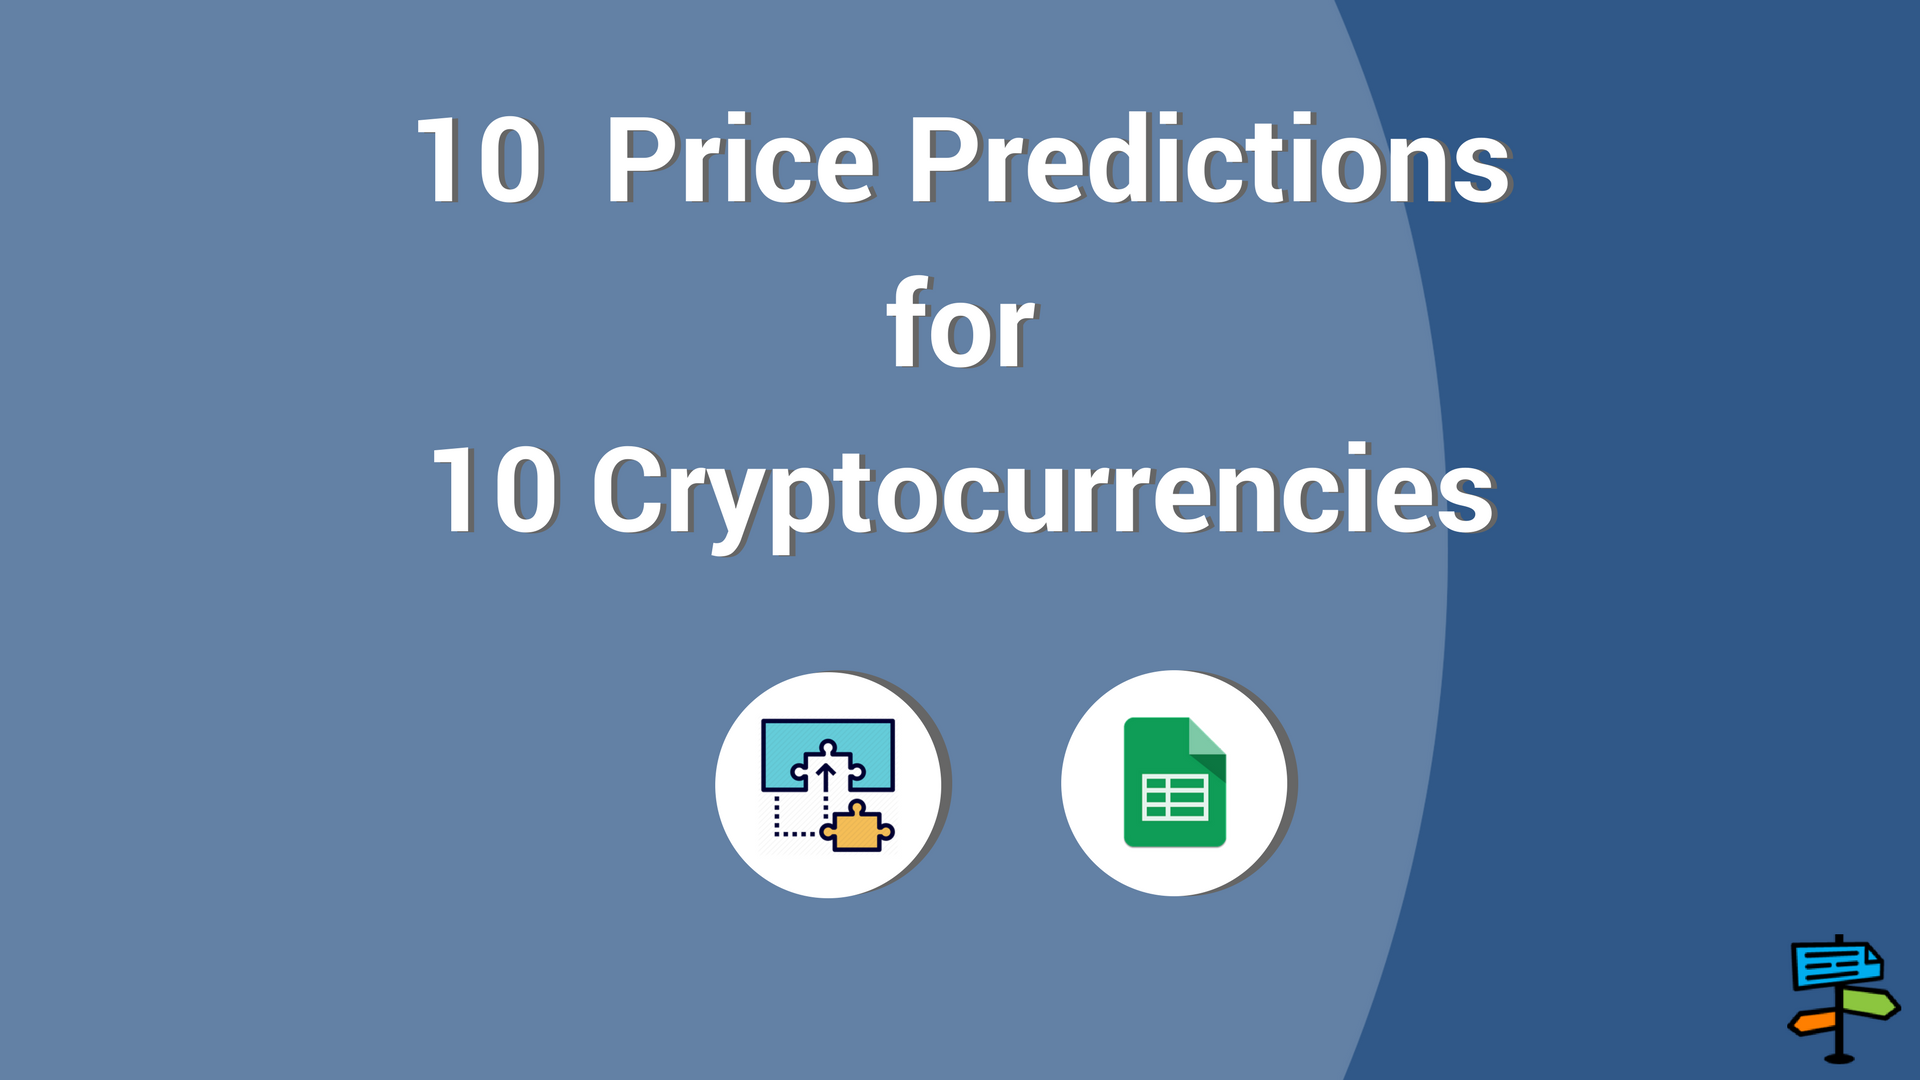 Cryptocurrency rating in 2019: forecast 9